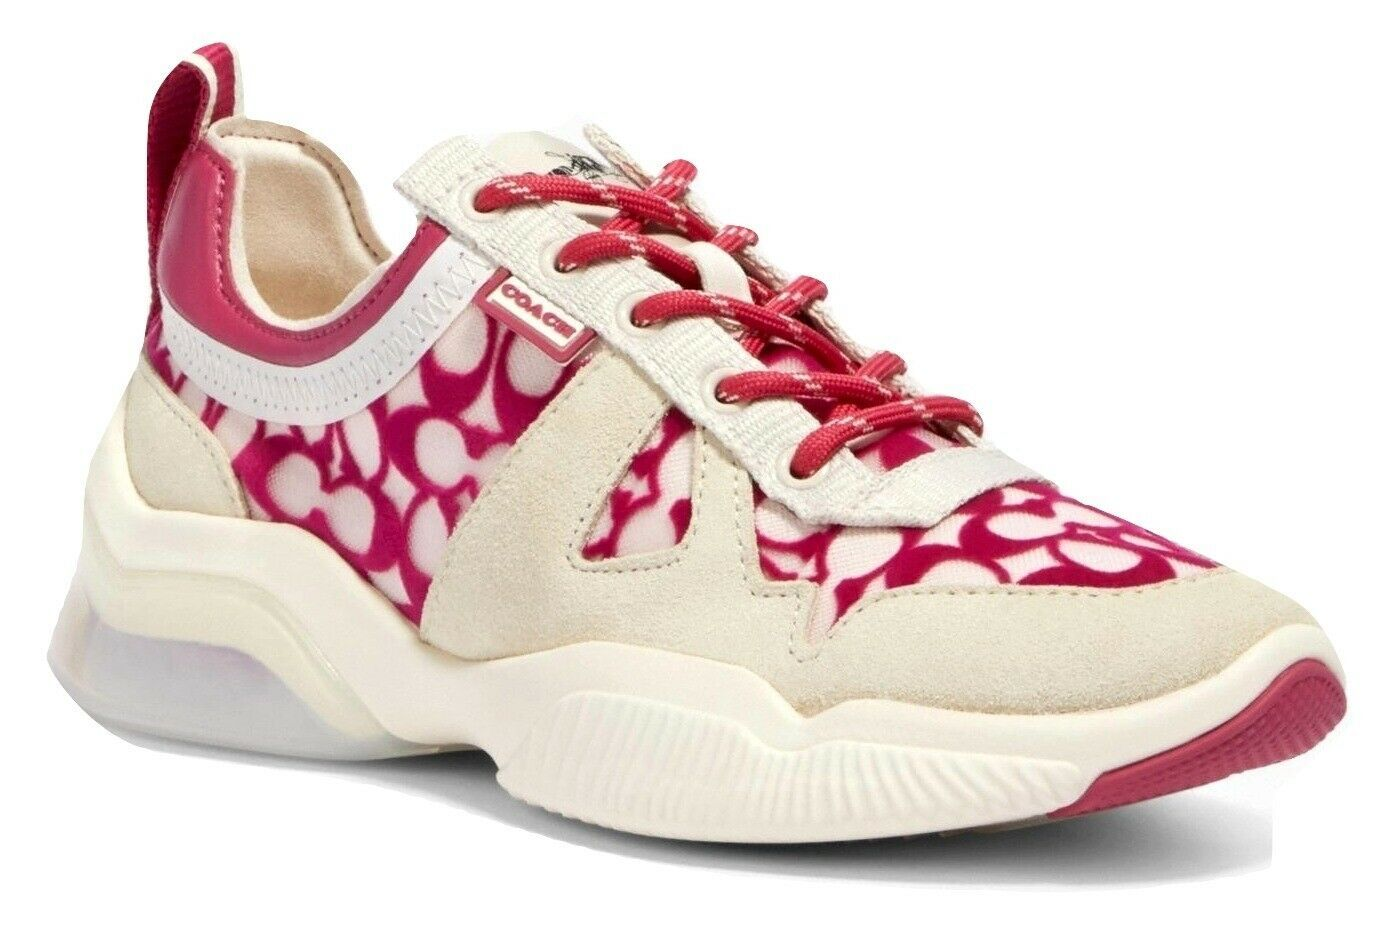 COACH CITYSOLE RUNNER SNEAKERS Hyacinth Size 9 MSRP: $228.00 - $133.65